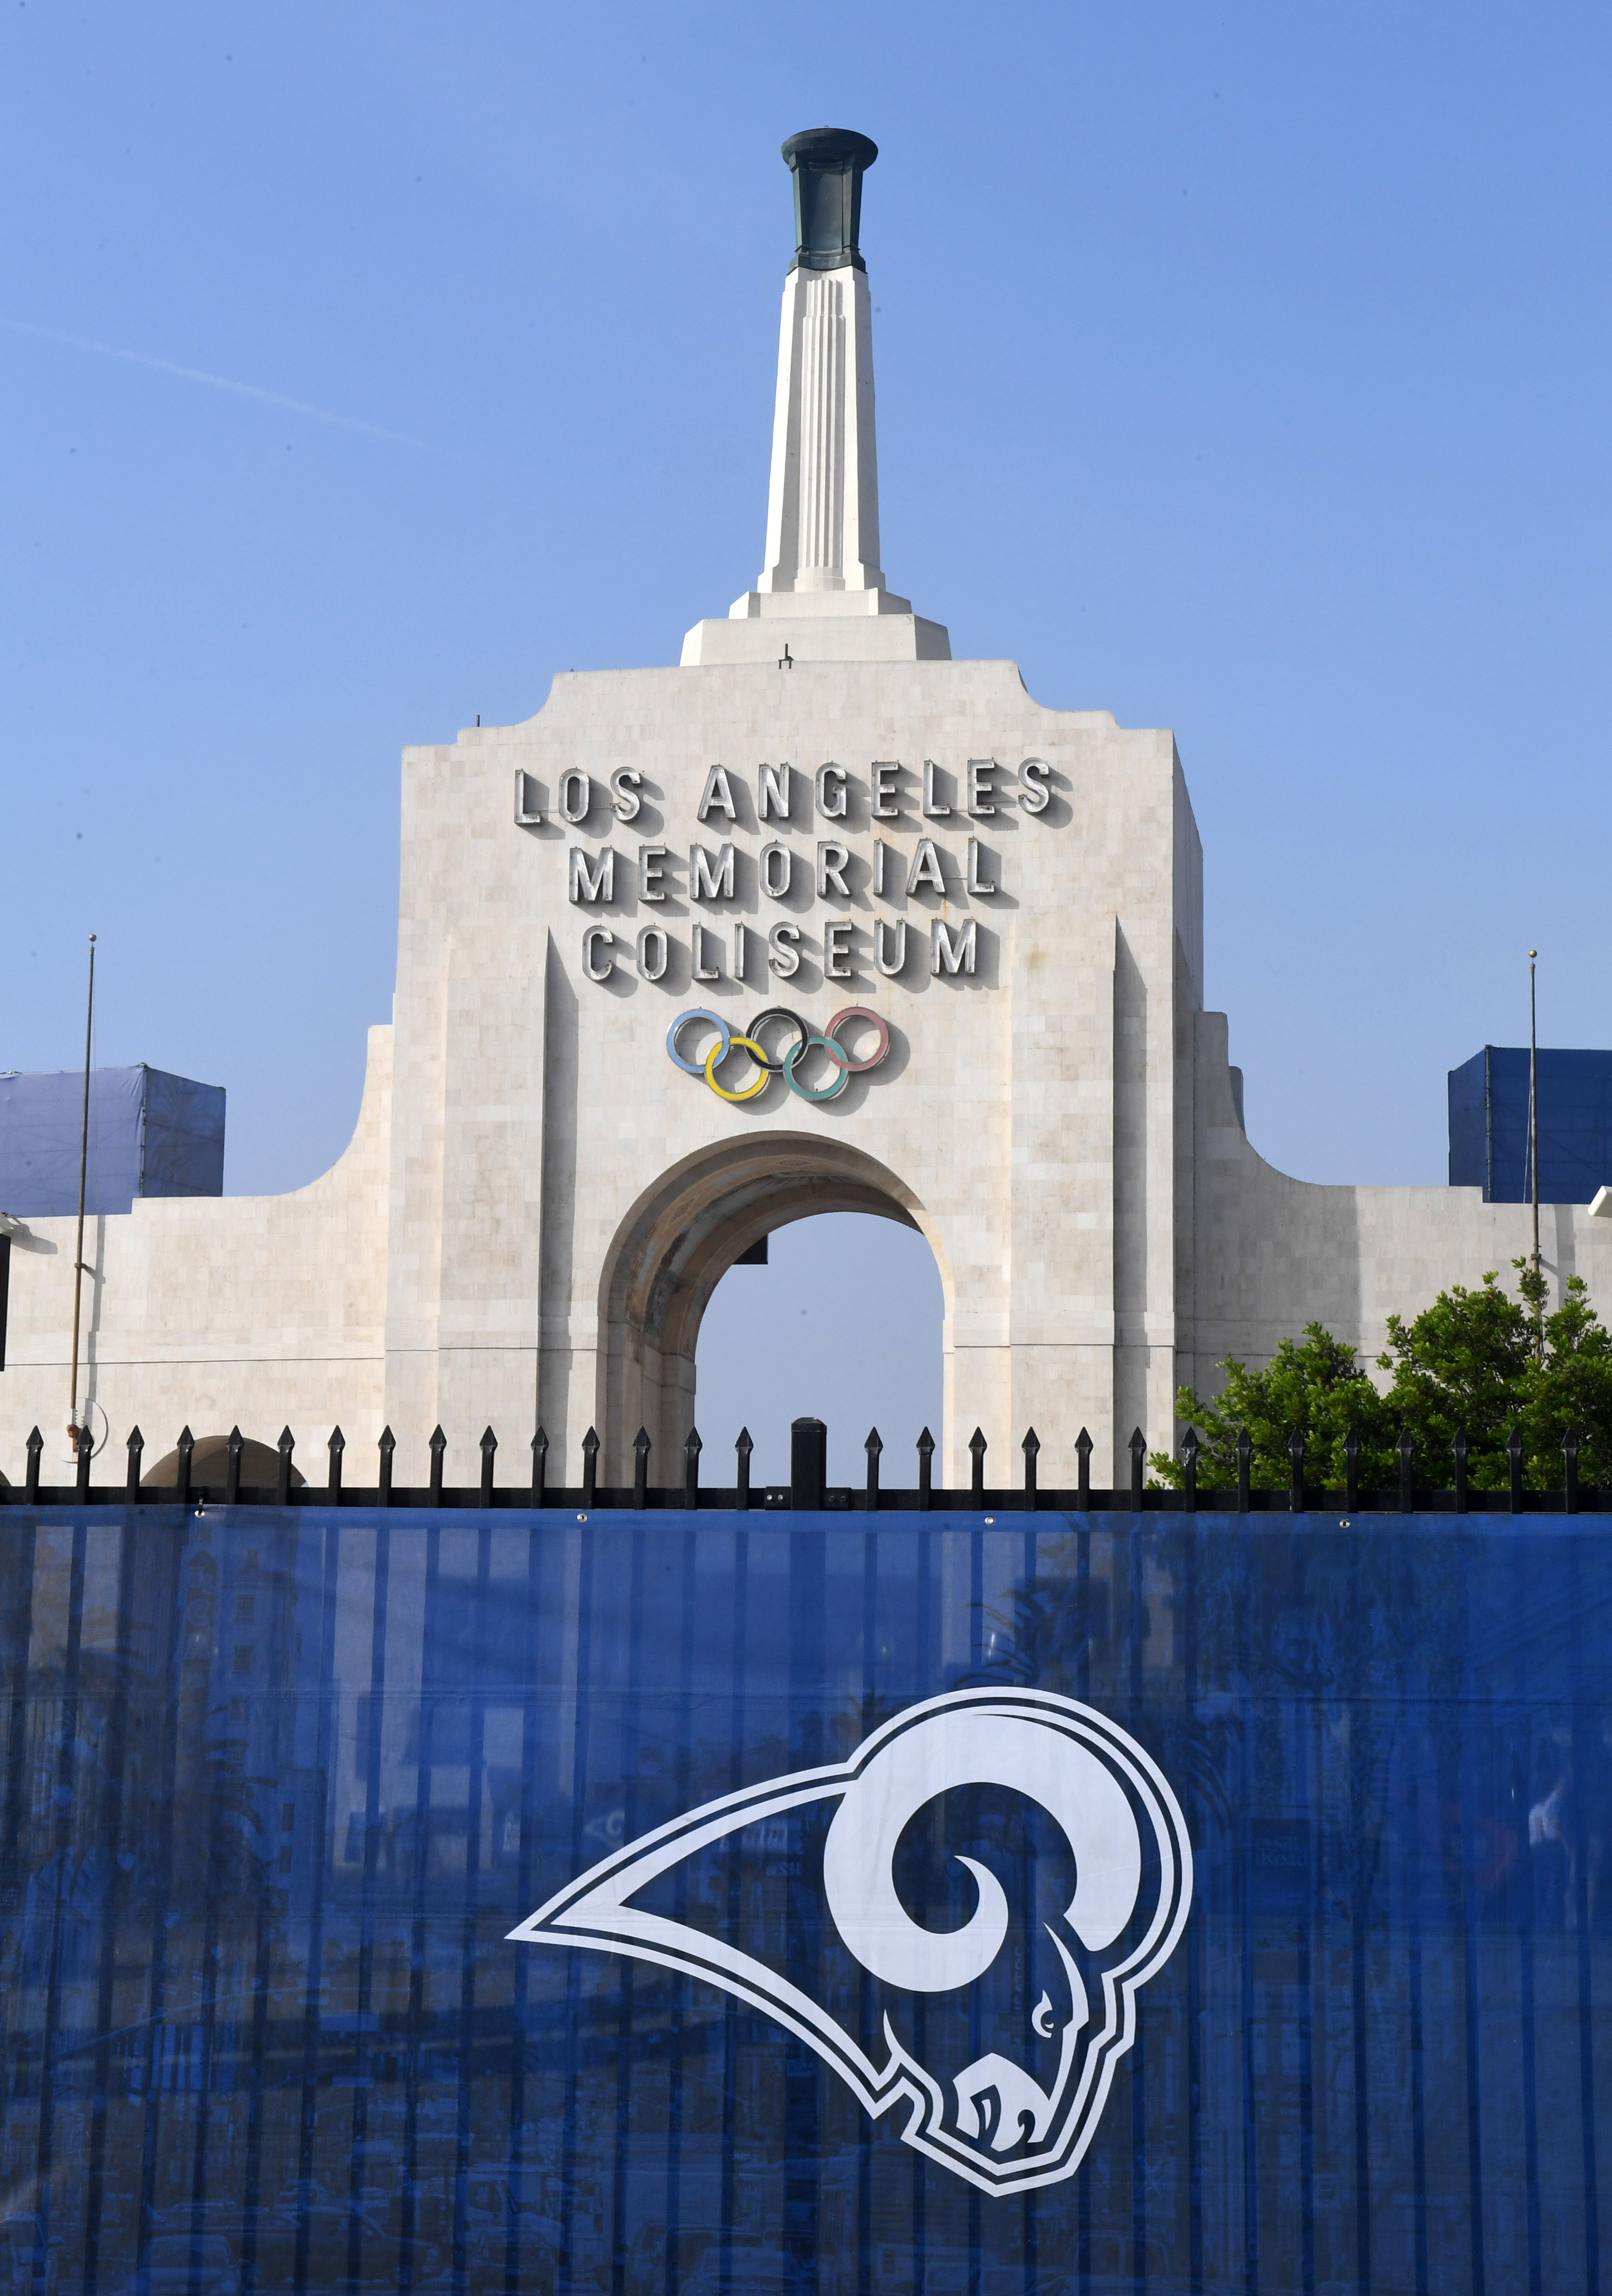 The Los Angeles Memorial Coliseum peristyle and Olympic torch during the Week 12 game between the New Orleans Saints and the Los Angeles Rams, Nov. 26, 2017.